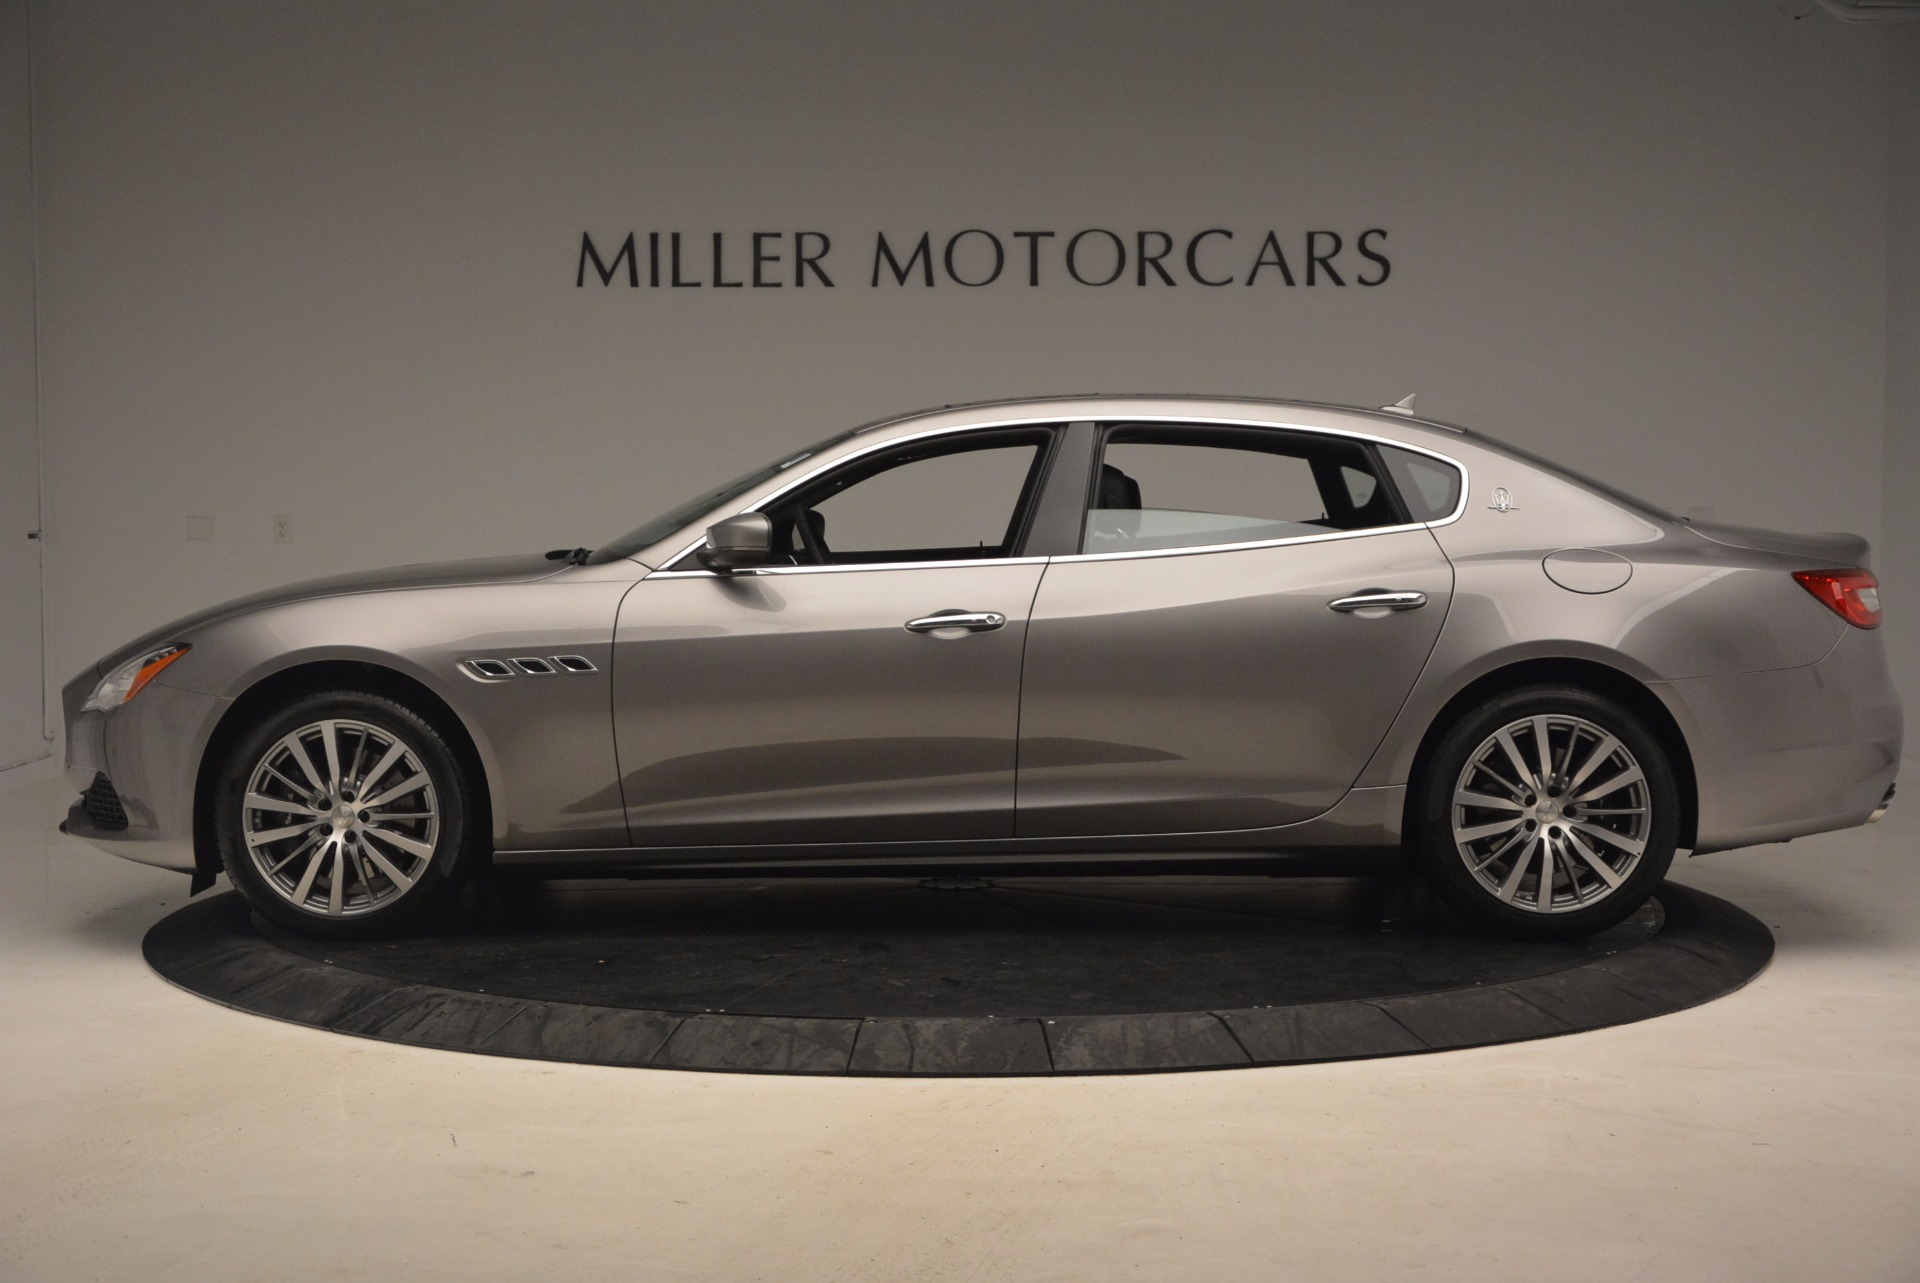 New 2017 Maserati Quattroporte SQ4 For Sale In Westport, CT 1066_p3